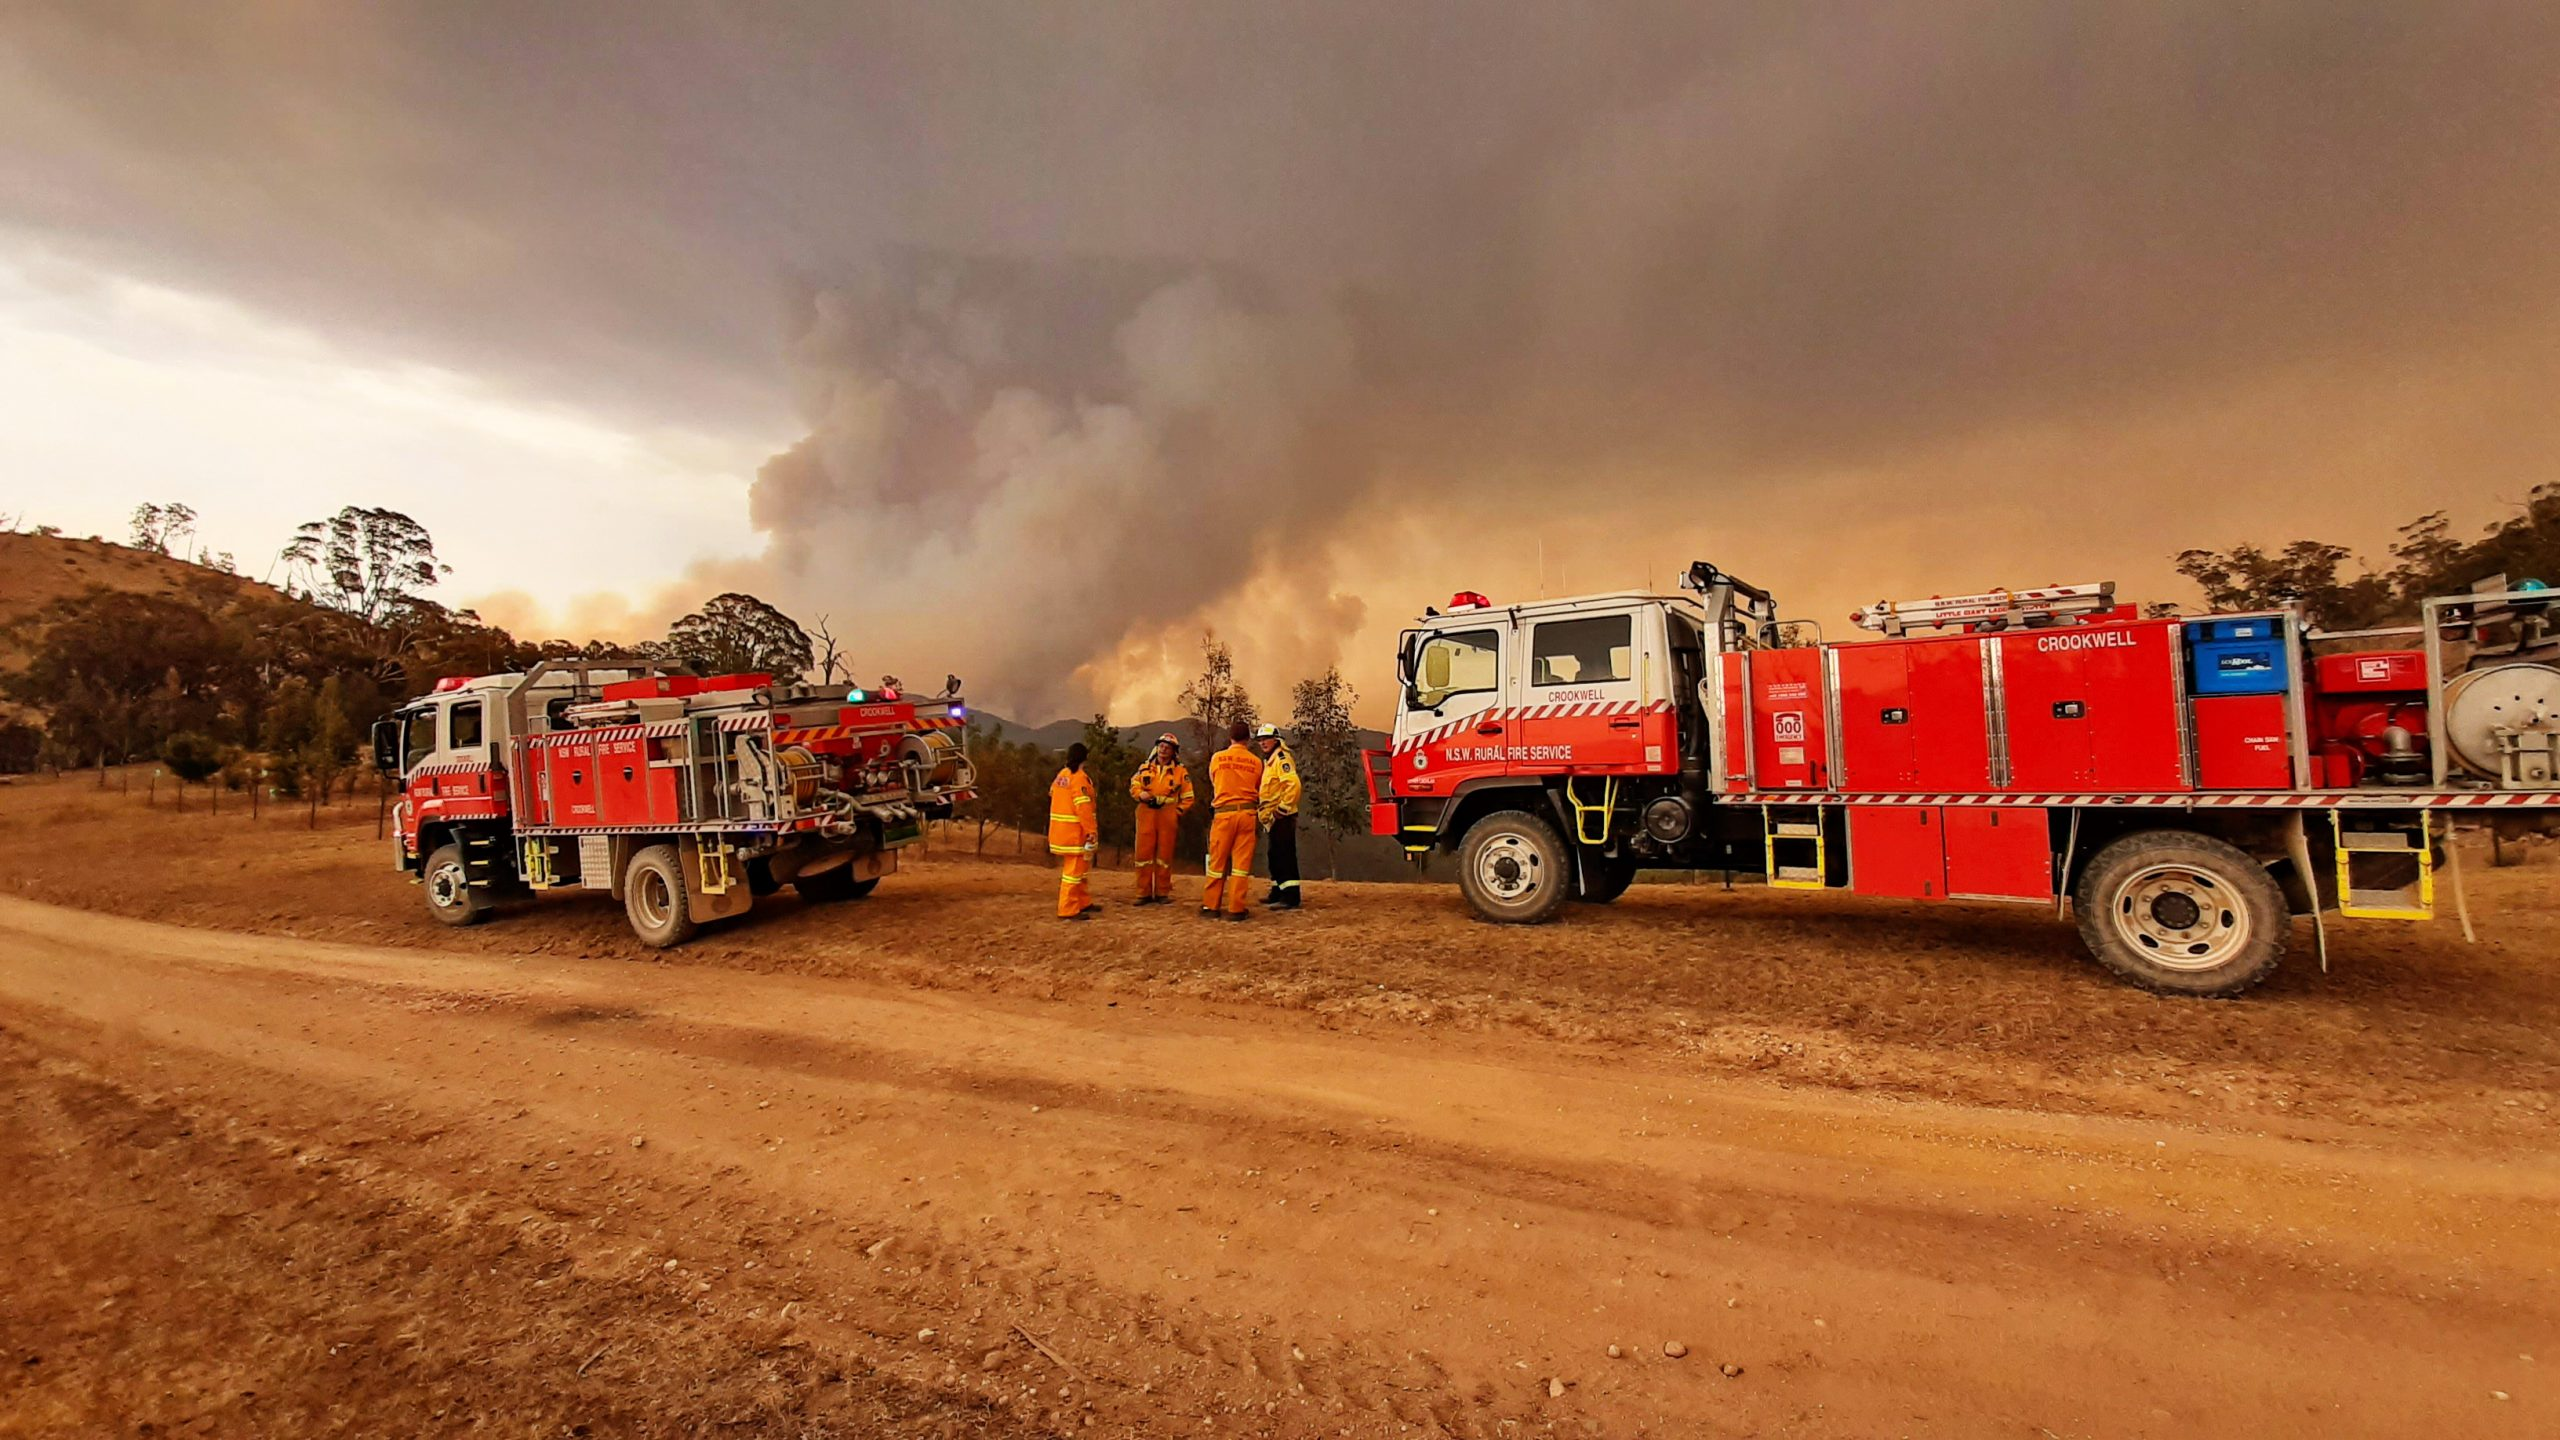 Two fire engines parked on a dirt road with a large smoke plume in the distance. Four fire fighters stand next to the trucks.